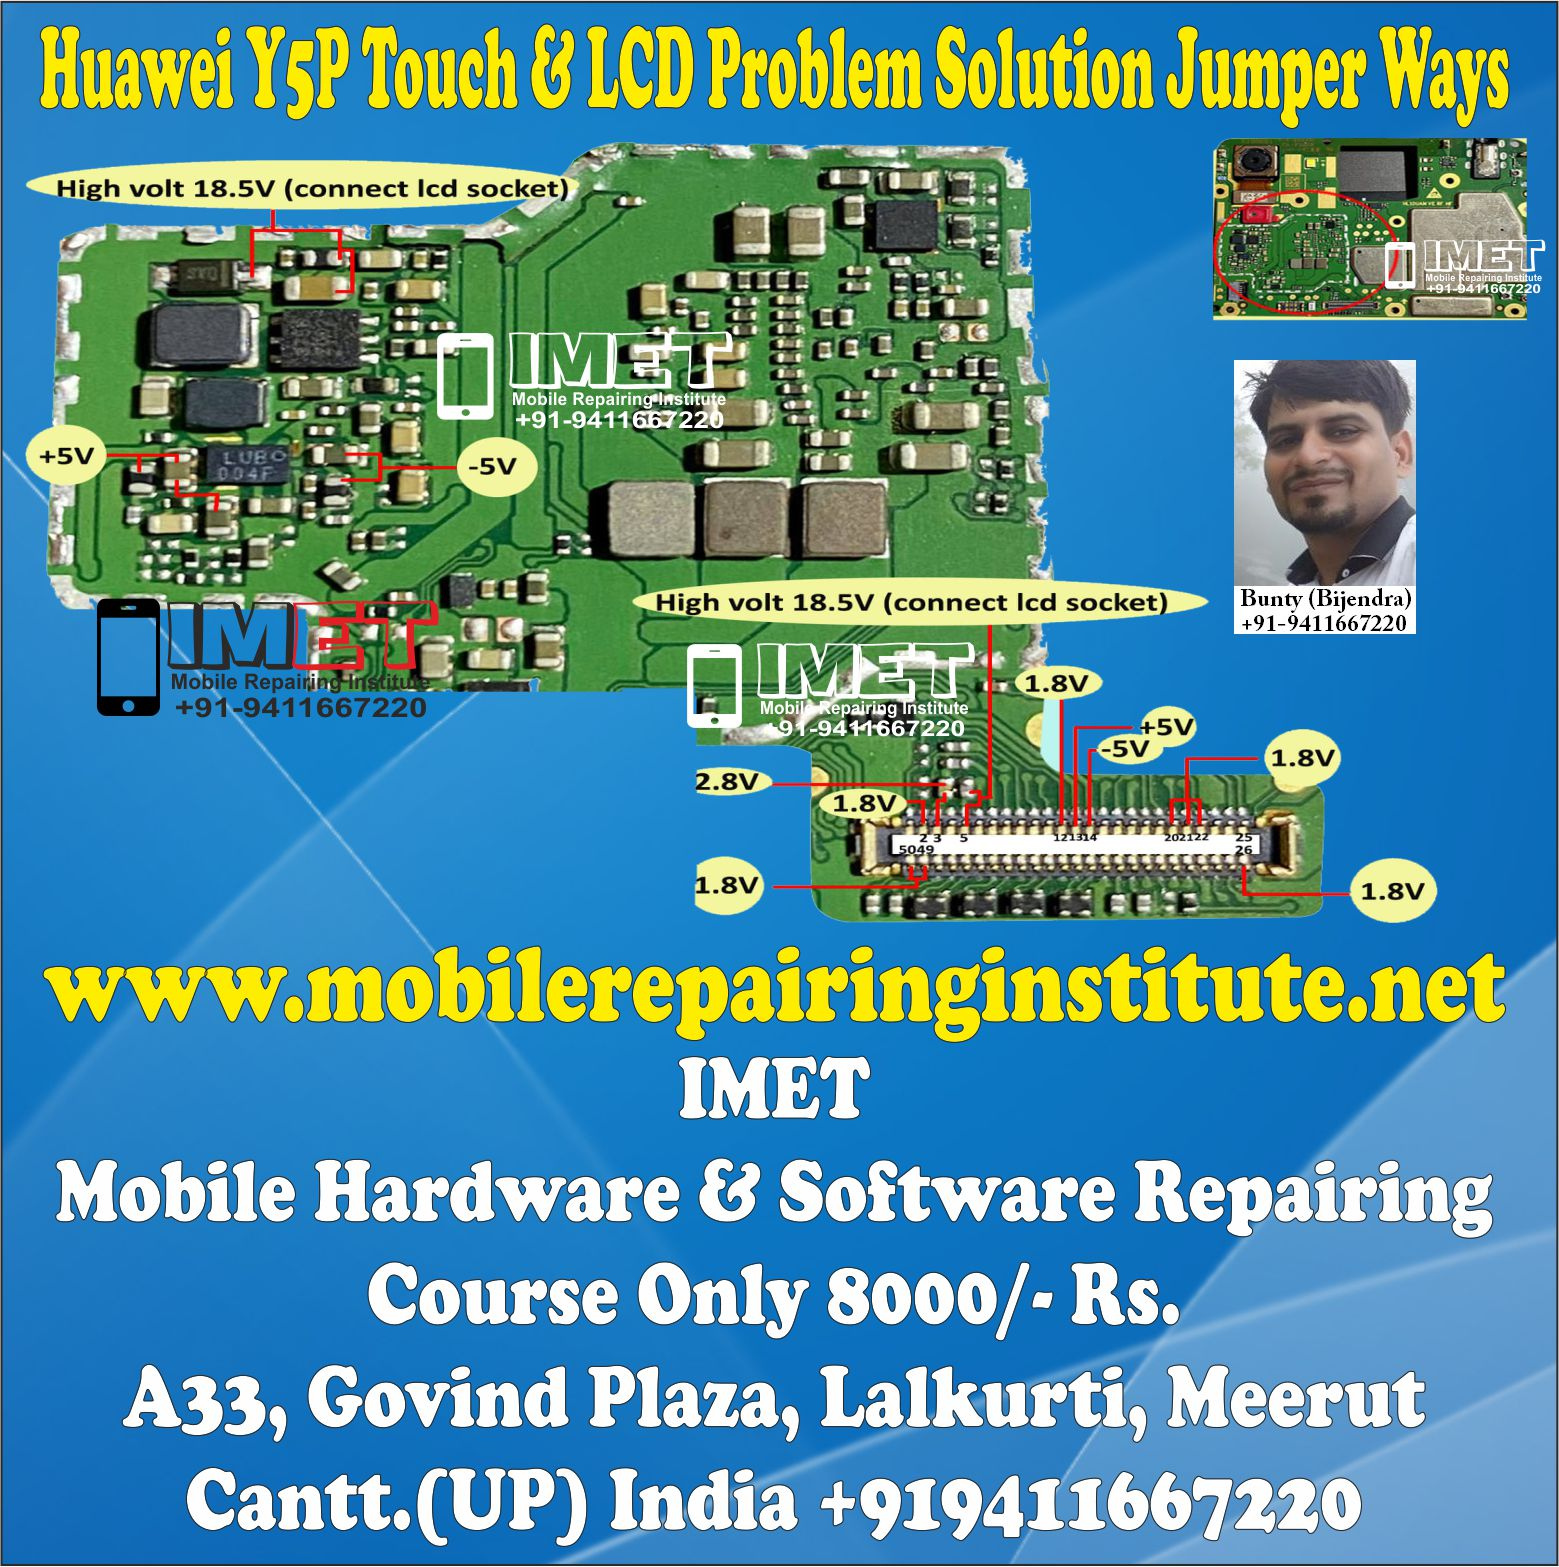 Huawei Y5P Touch & LCD Problem Solution Jumper Ways